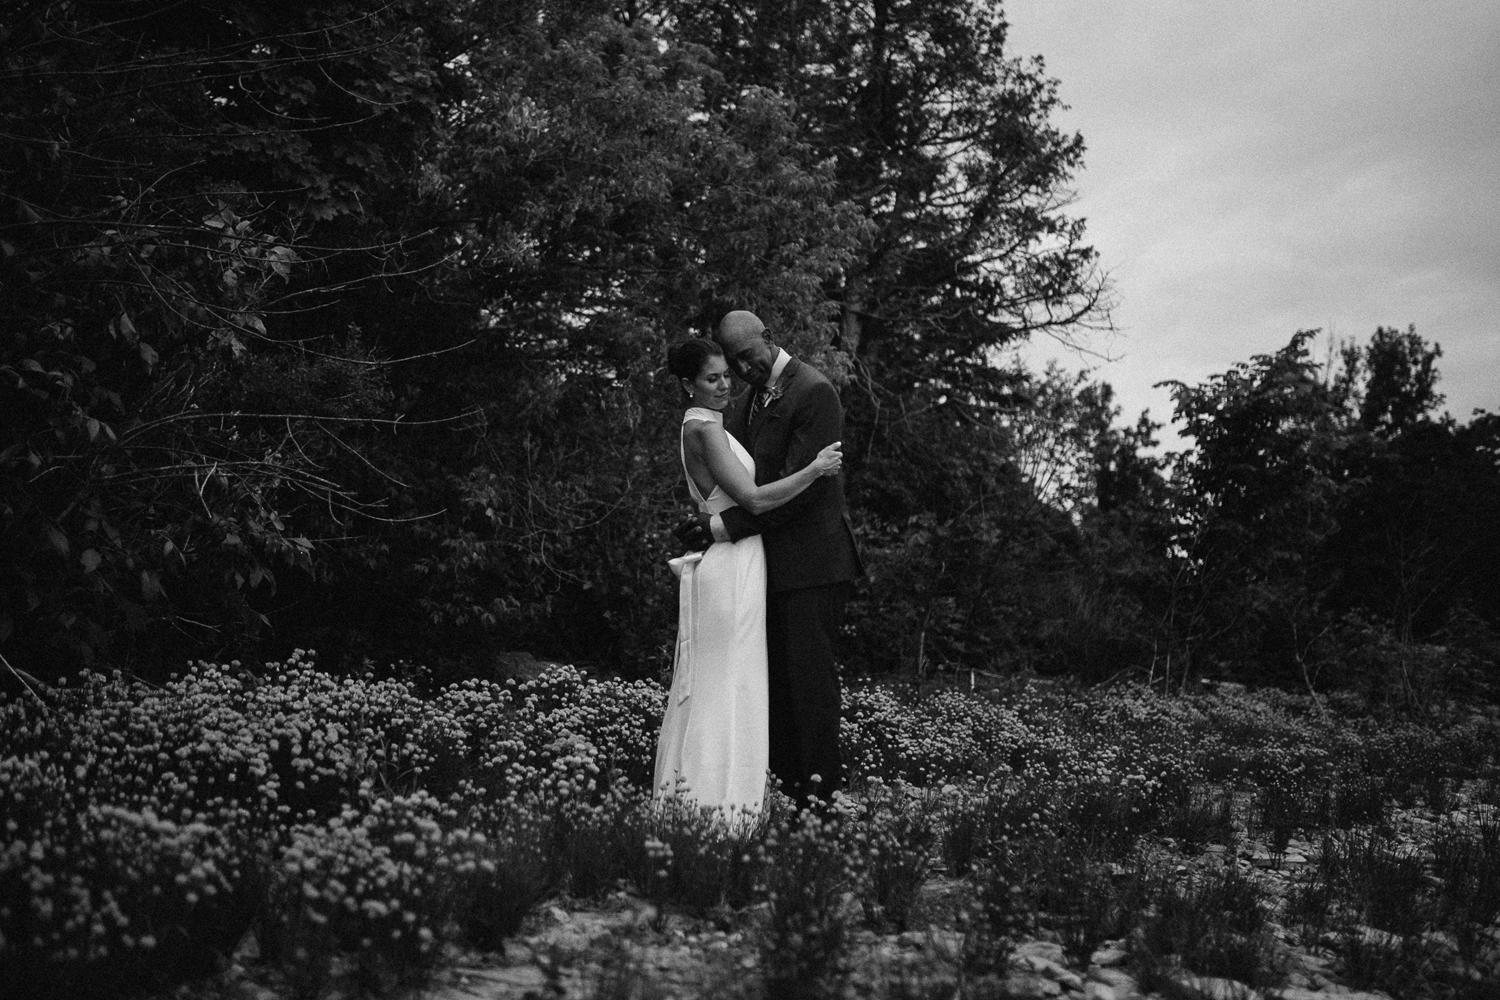 ottawa river small intimate wedding-251.jpg